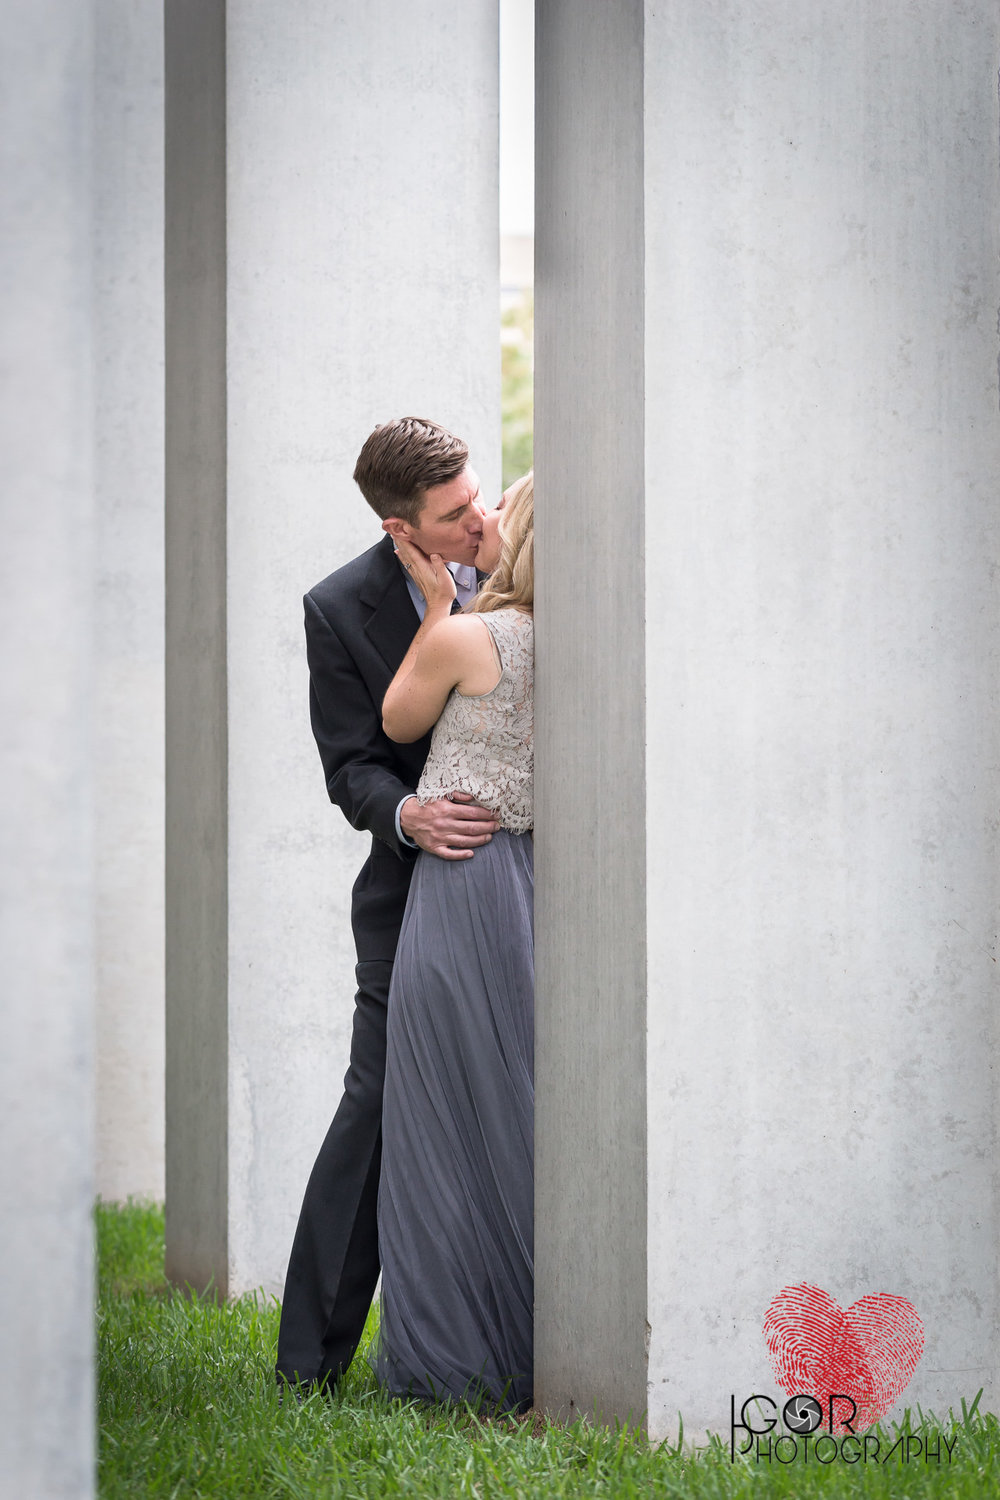 Modern engagement pictures